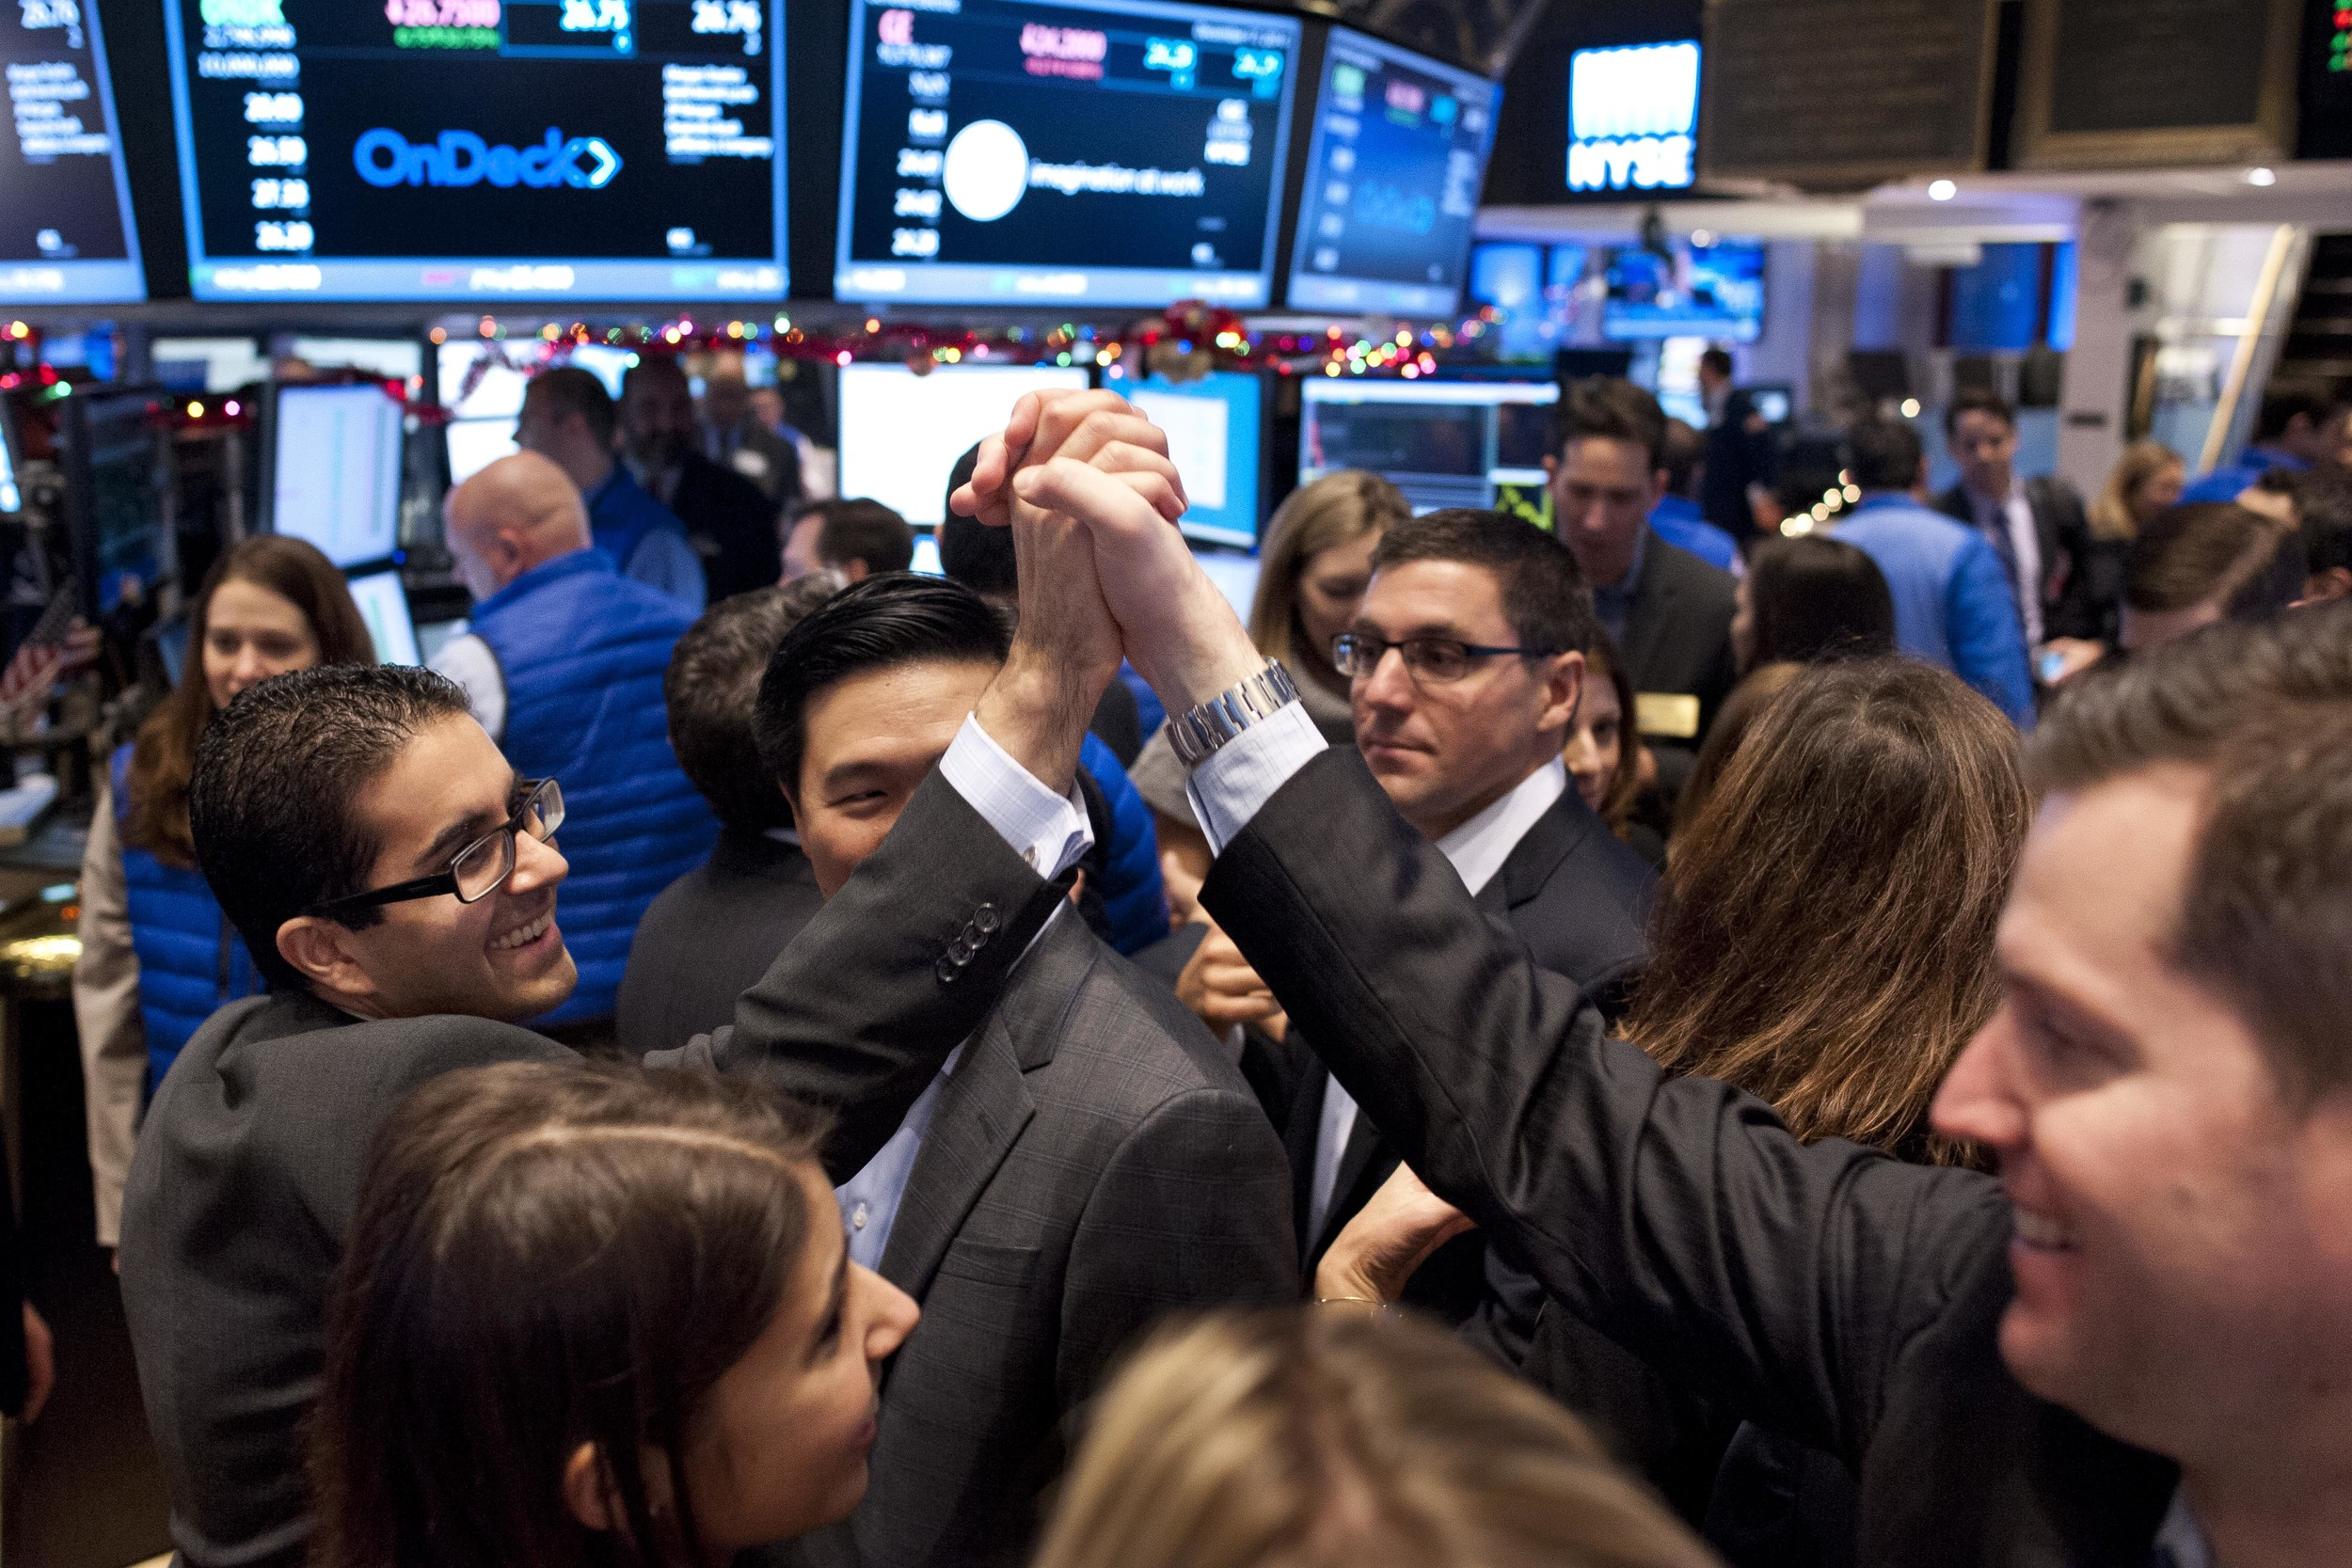 OnDeck employees celebrate as their company's stock debuts at $20.00 per share, rising to $27.98 by the end of its first day of trading.